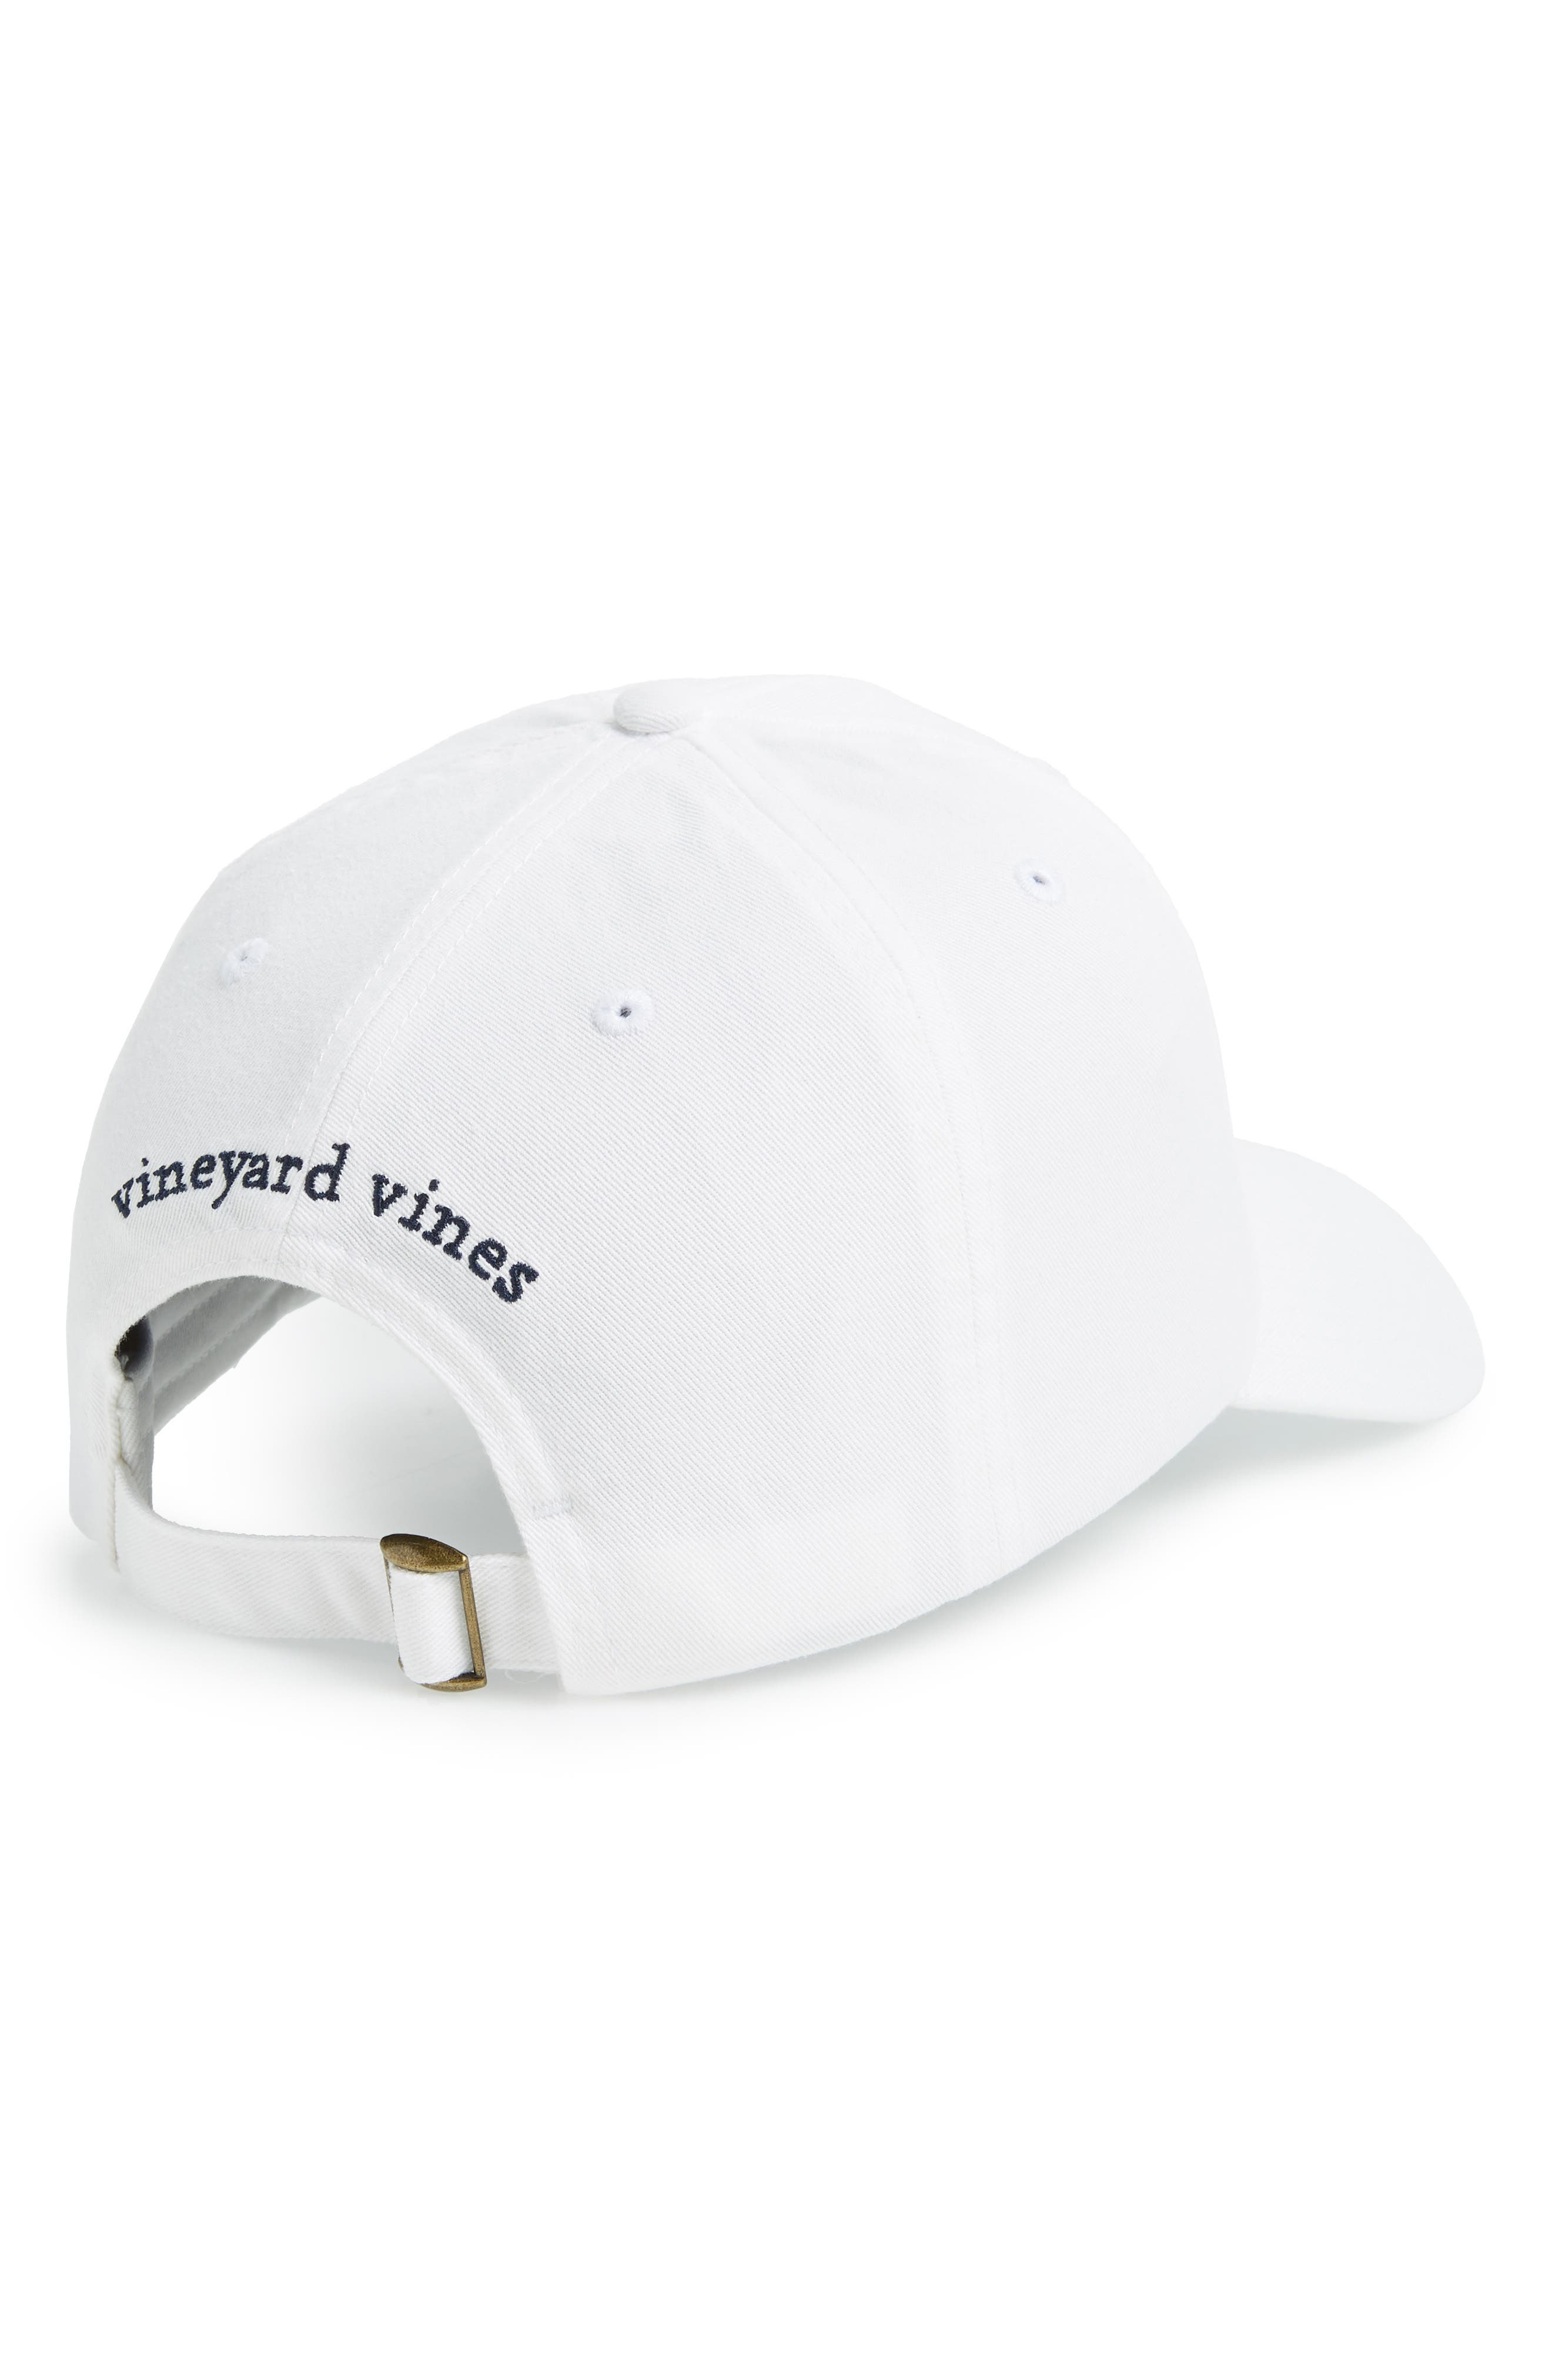 Embroidered Vineyard Flag Cap,                             Alternate thumbnail 2, color,                             WHITE CAP